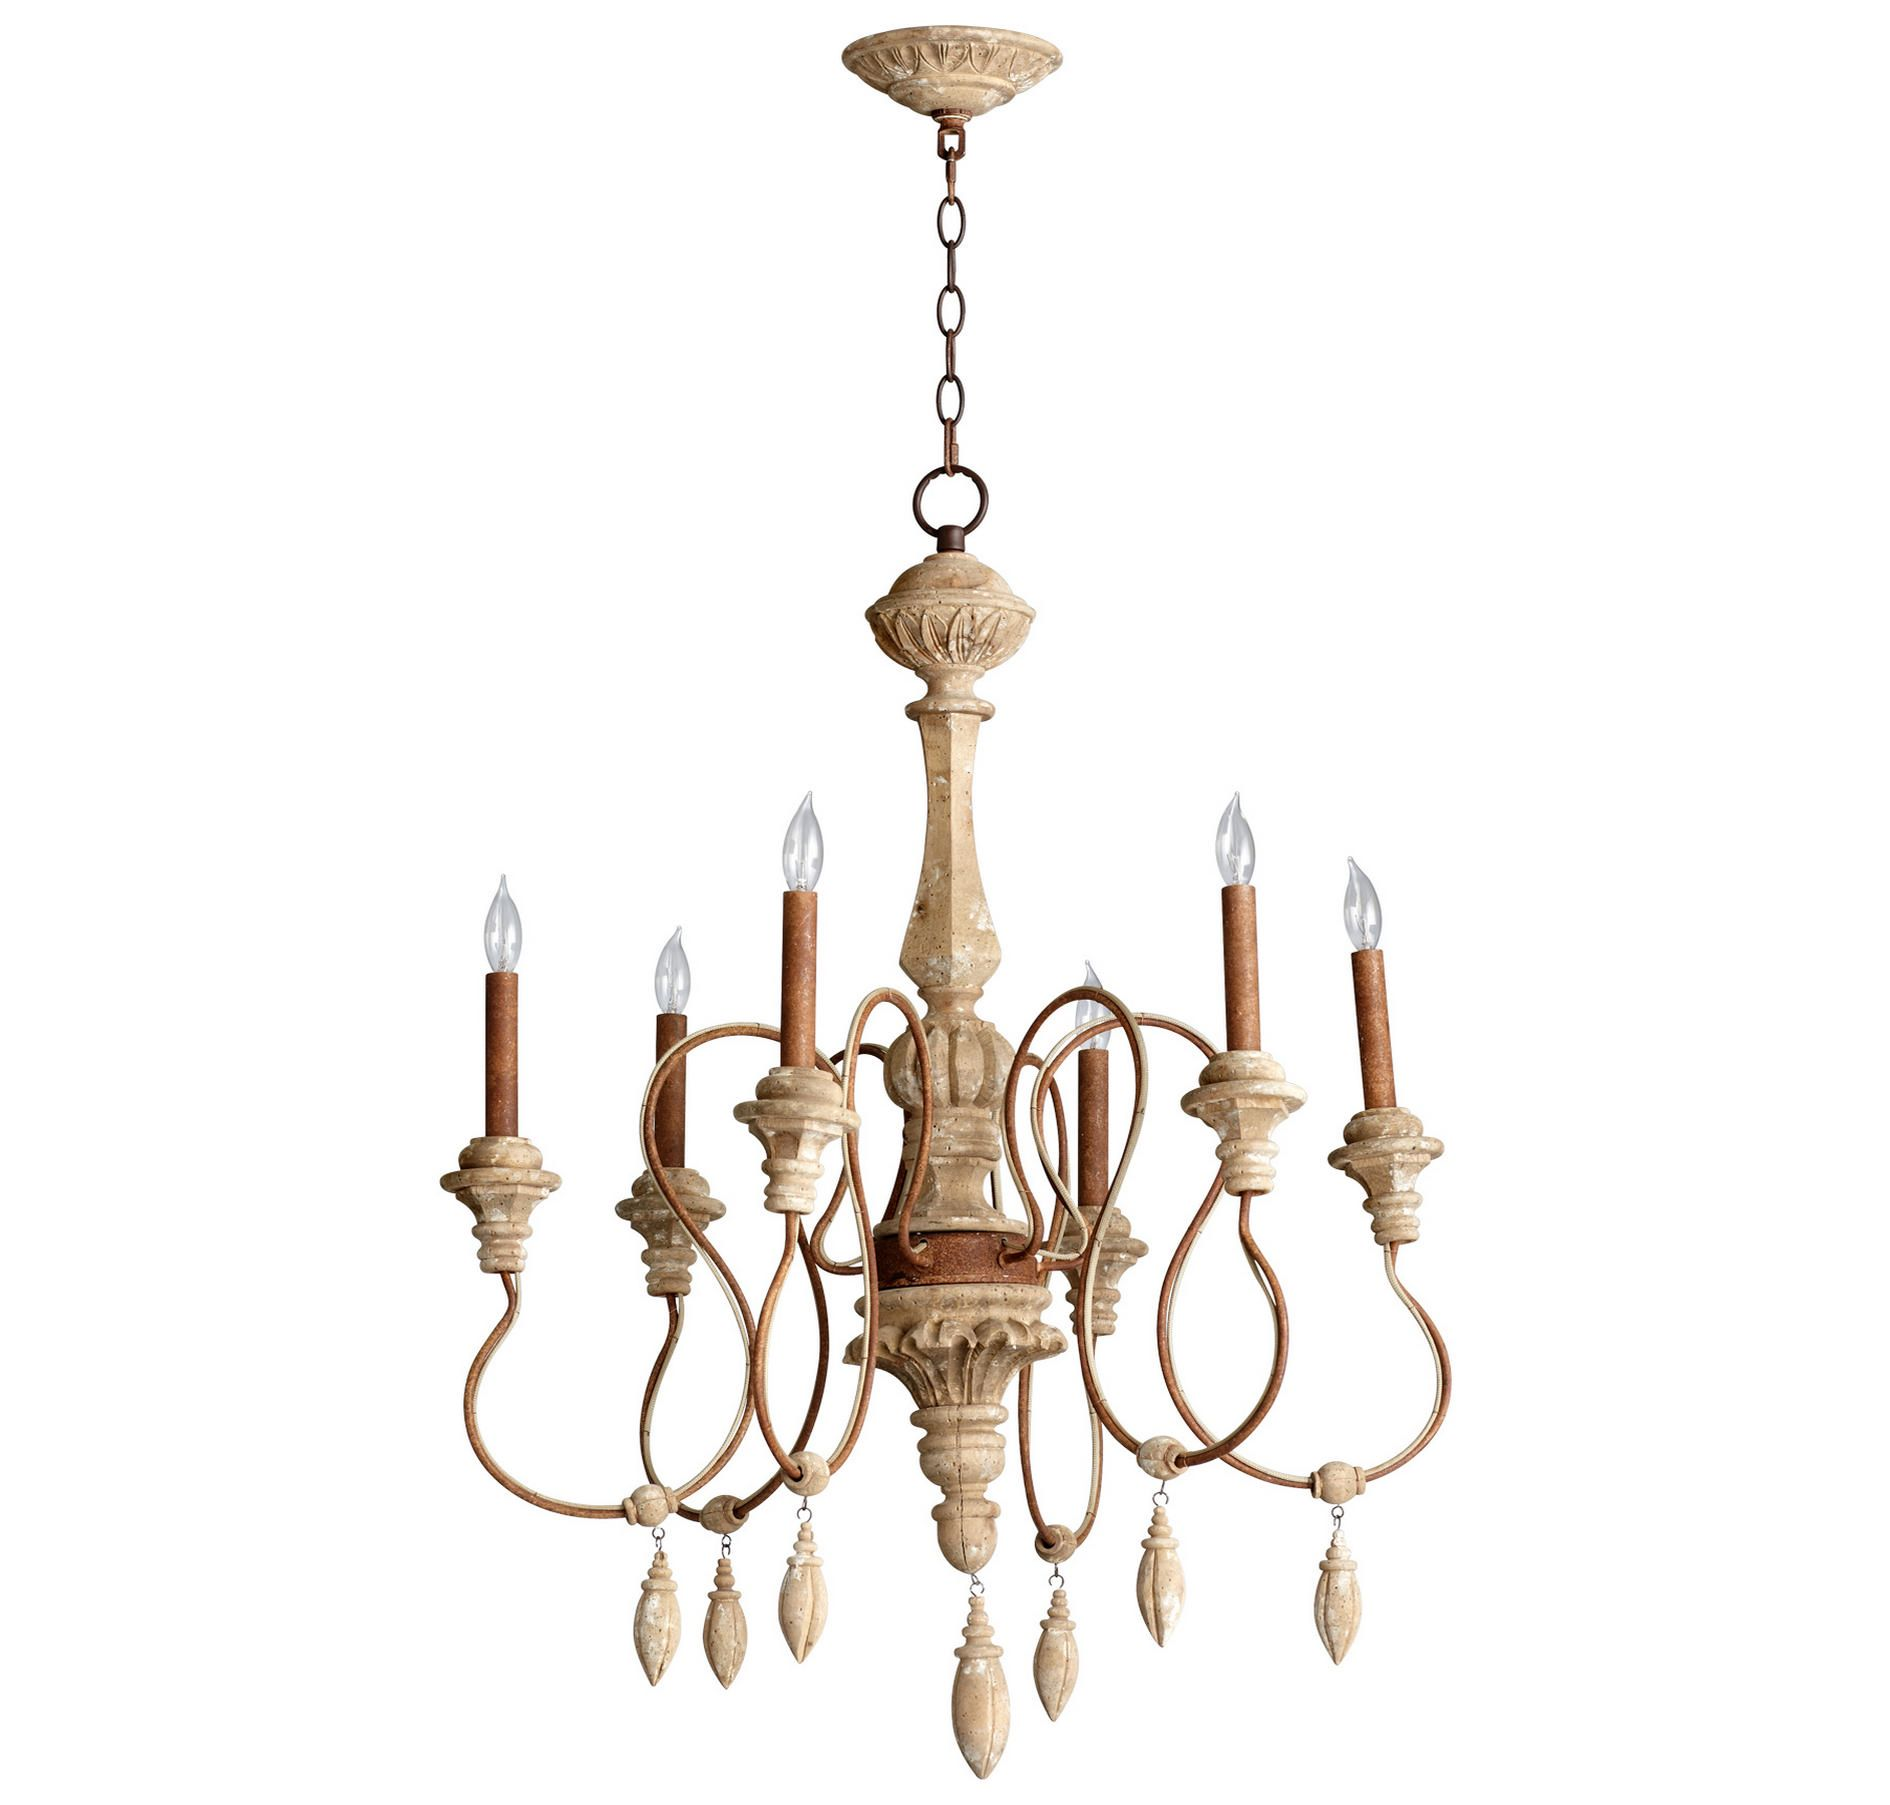 Cyan design 05176 choat 6 light chandelier in sutherland buff finish cyan design 05176 alda 6 light 1 tier chandelier with wood and wrought iron acce sutherland buff indoor lighting chandeliers arubaitofo Gallery